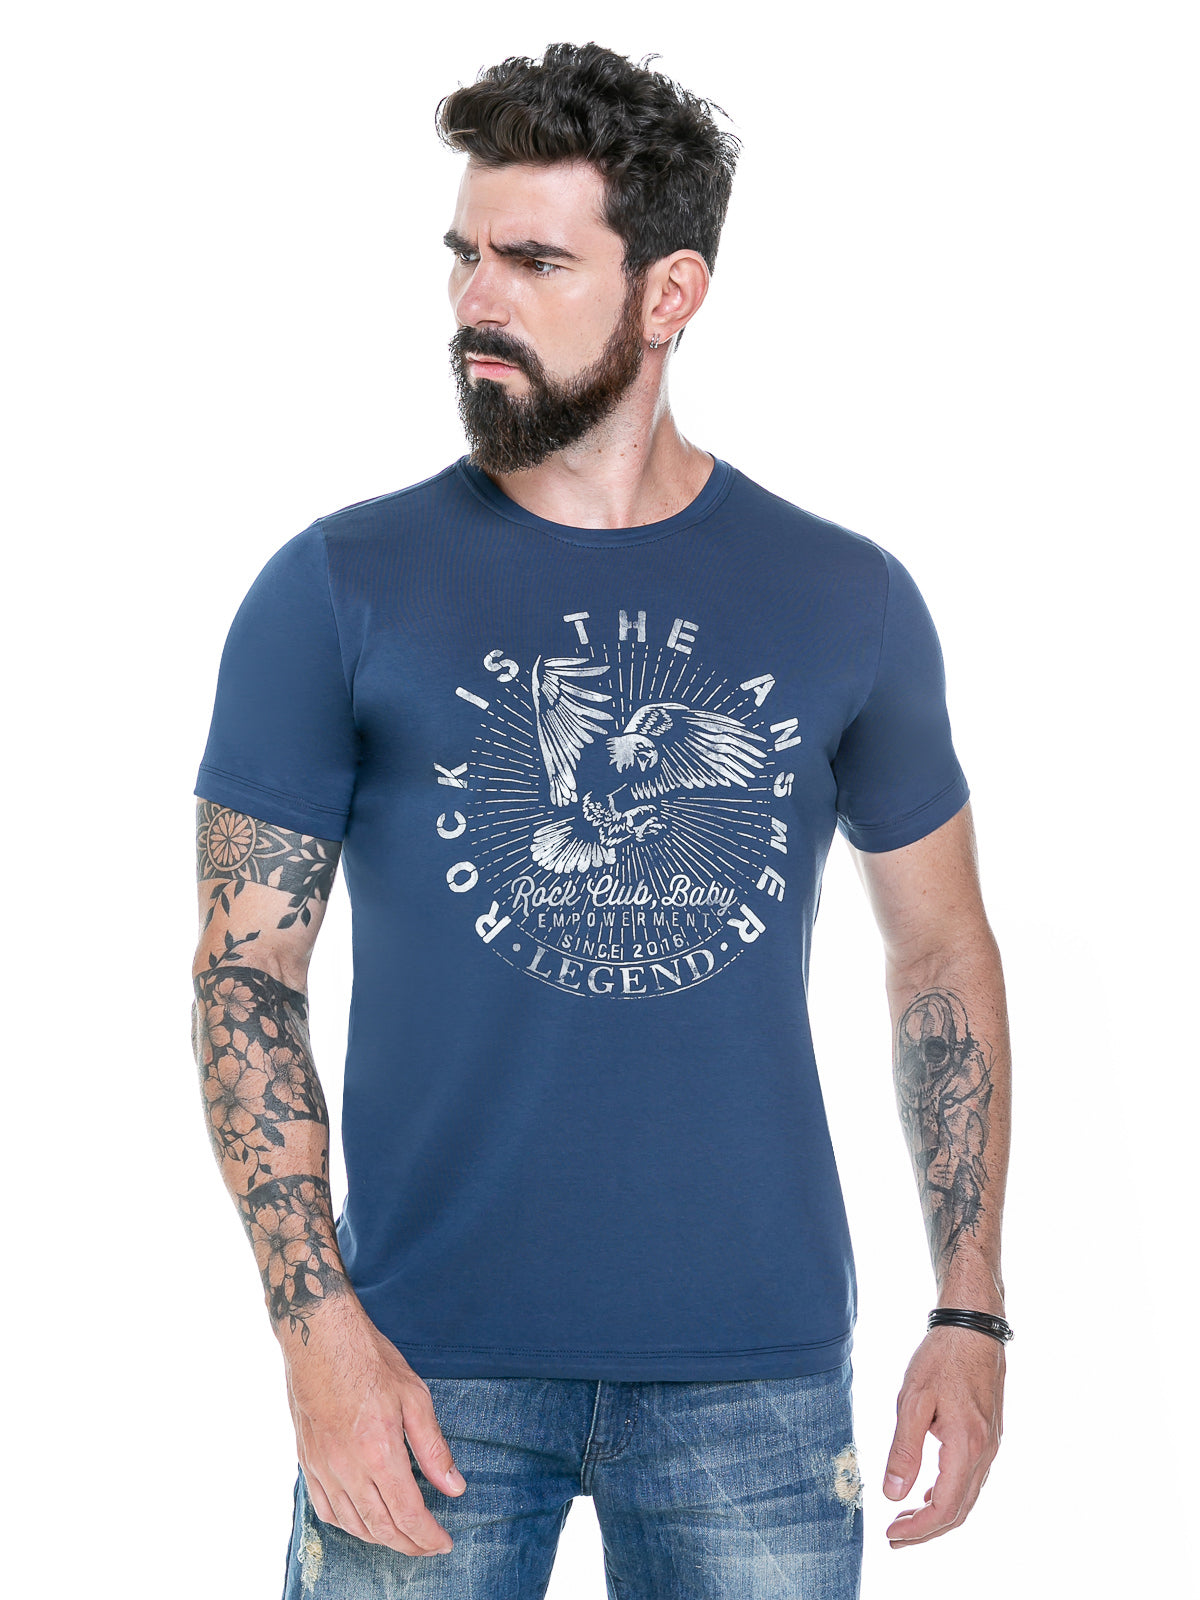 Camiseta masculina Rock is the Answer - Blue